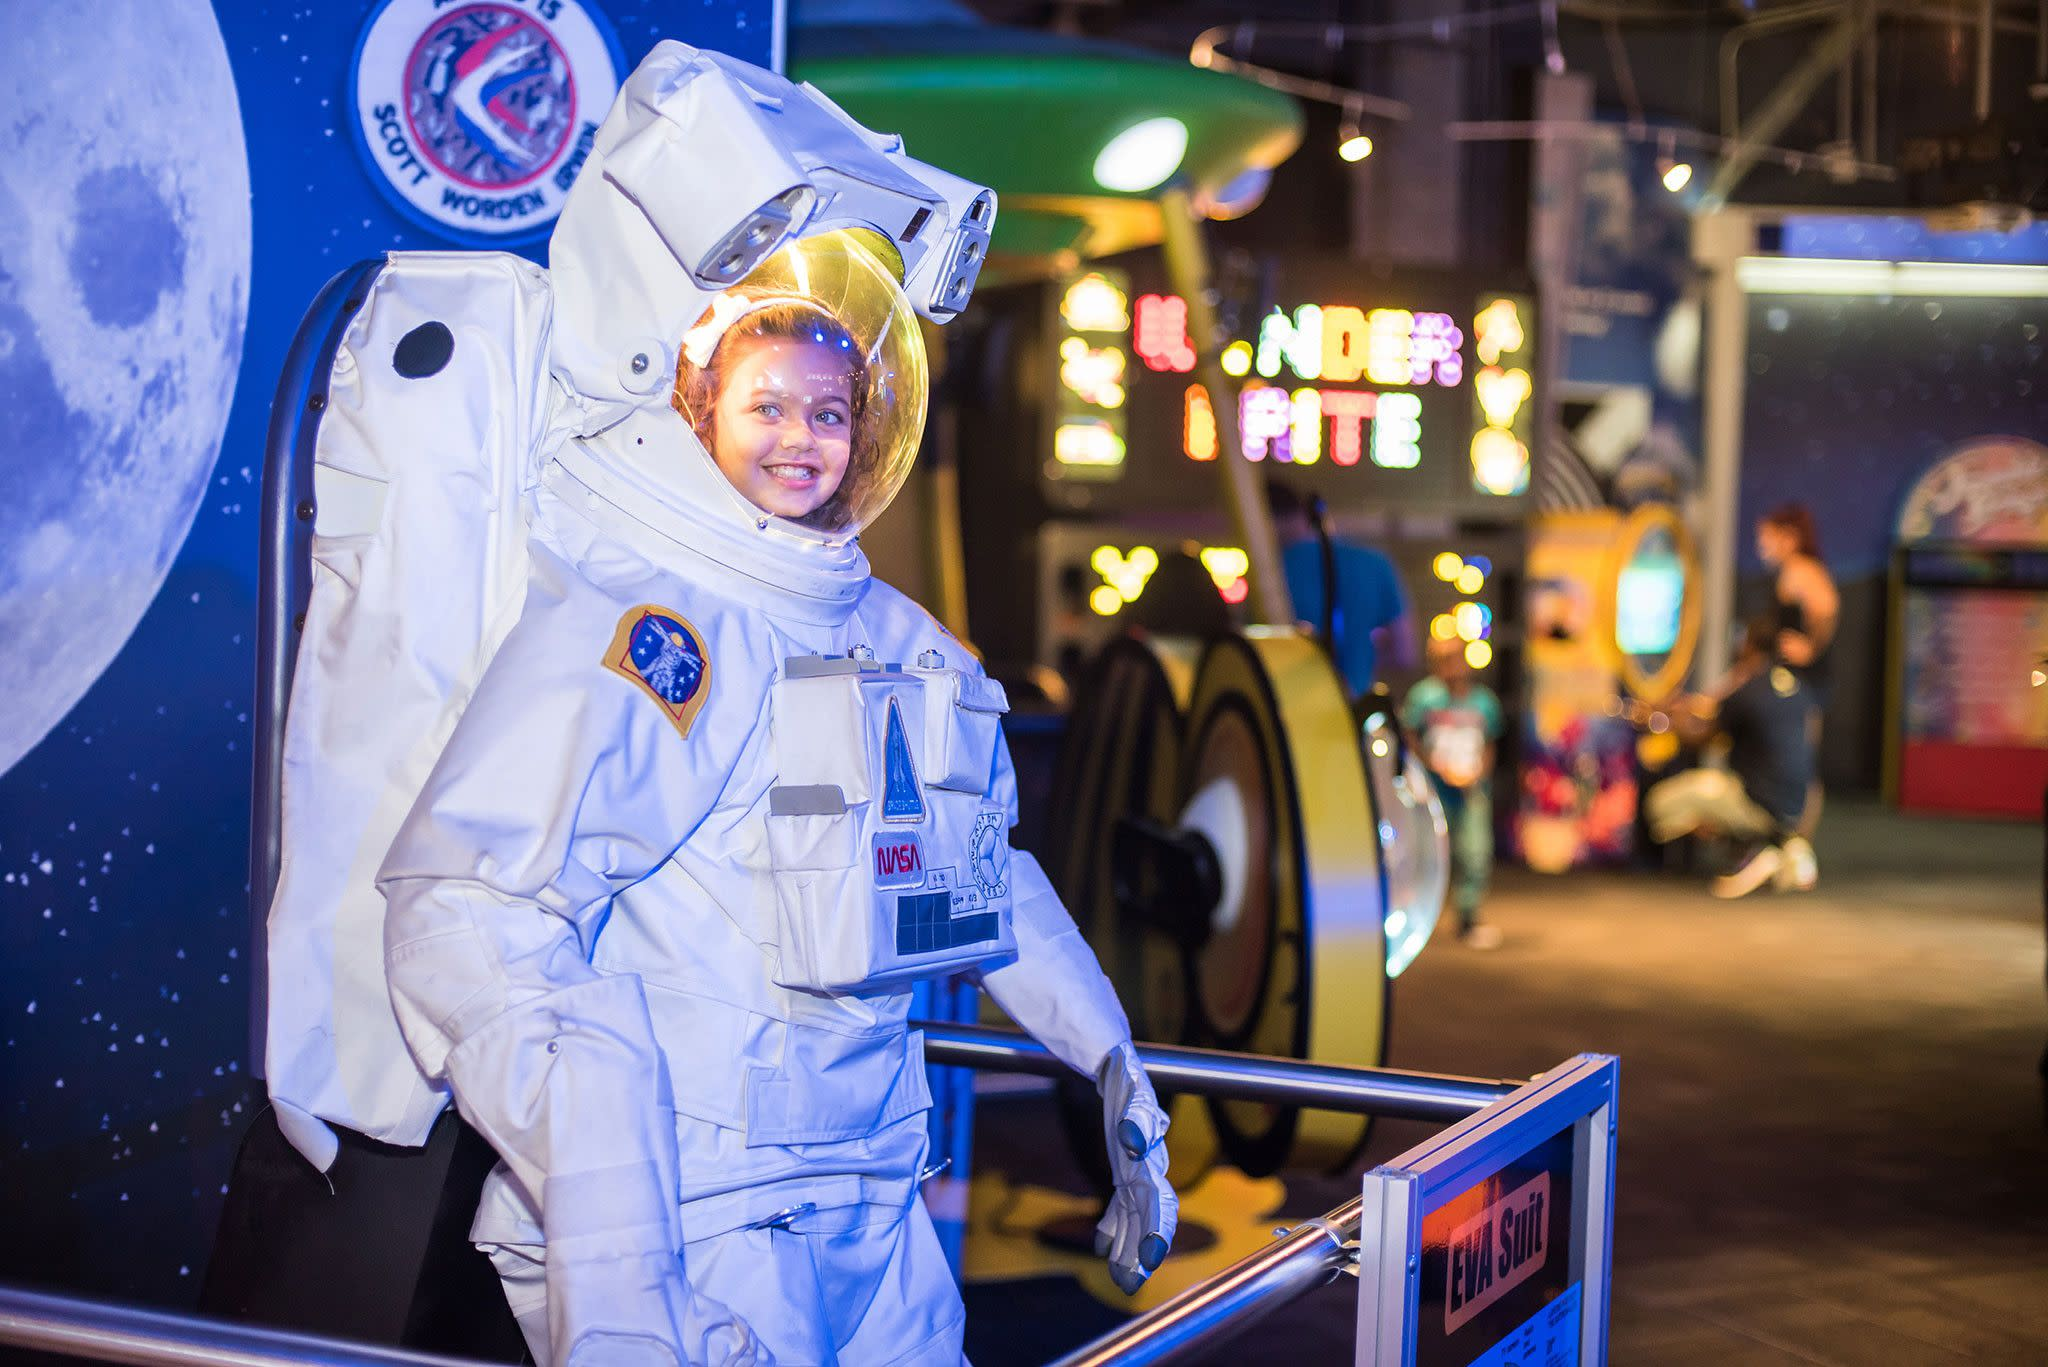 Visit Orlando Has Discount Tickets to Top Attractions Like WonderWorks (Pictured)